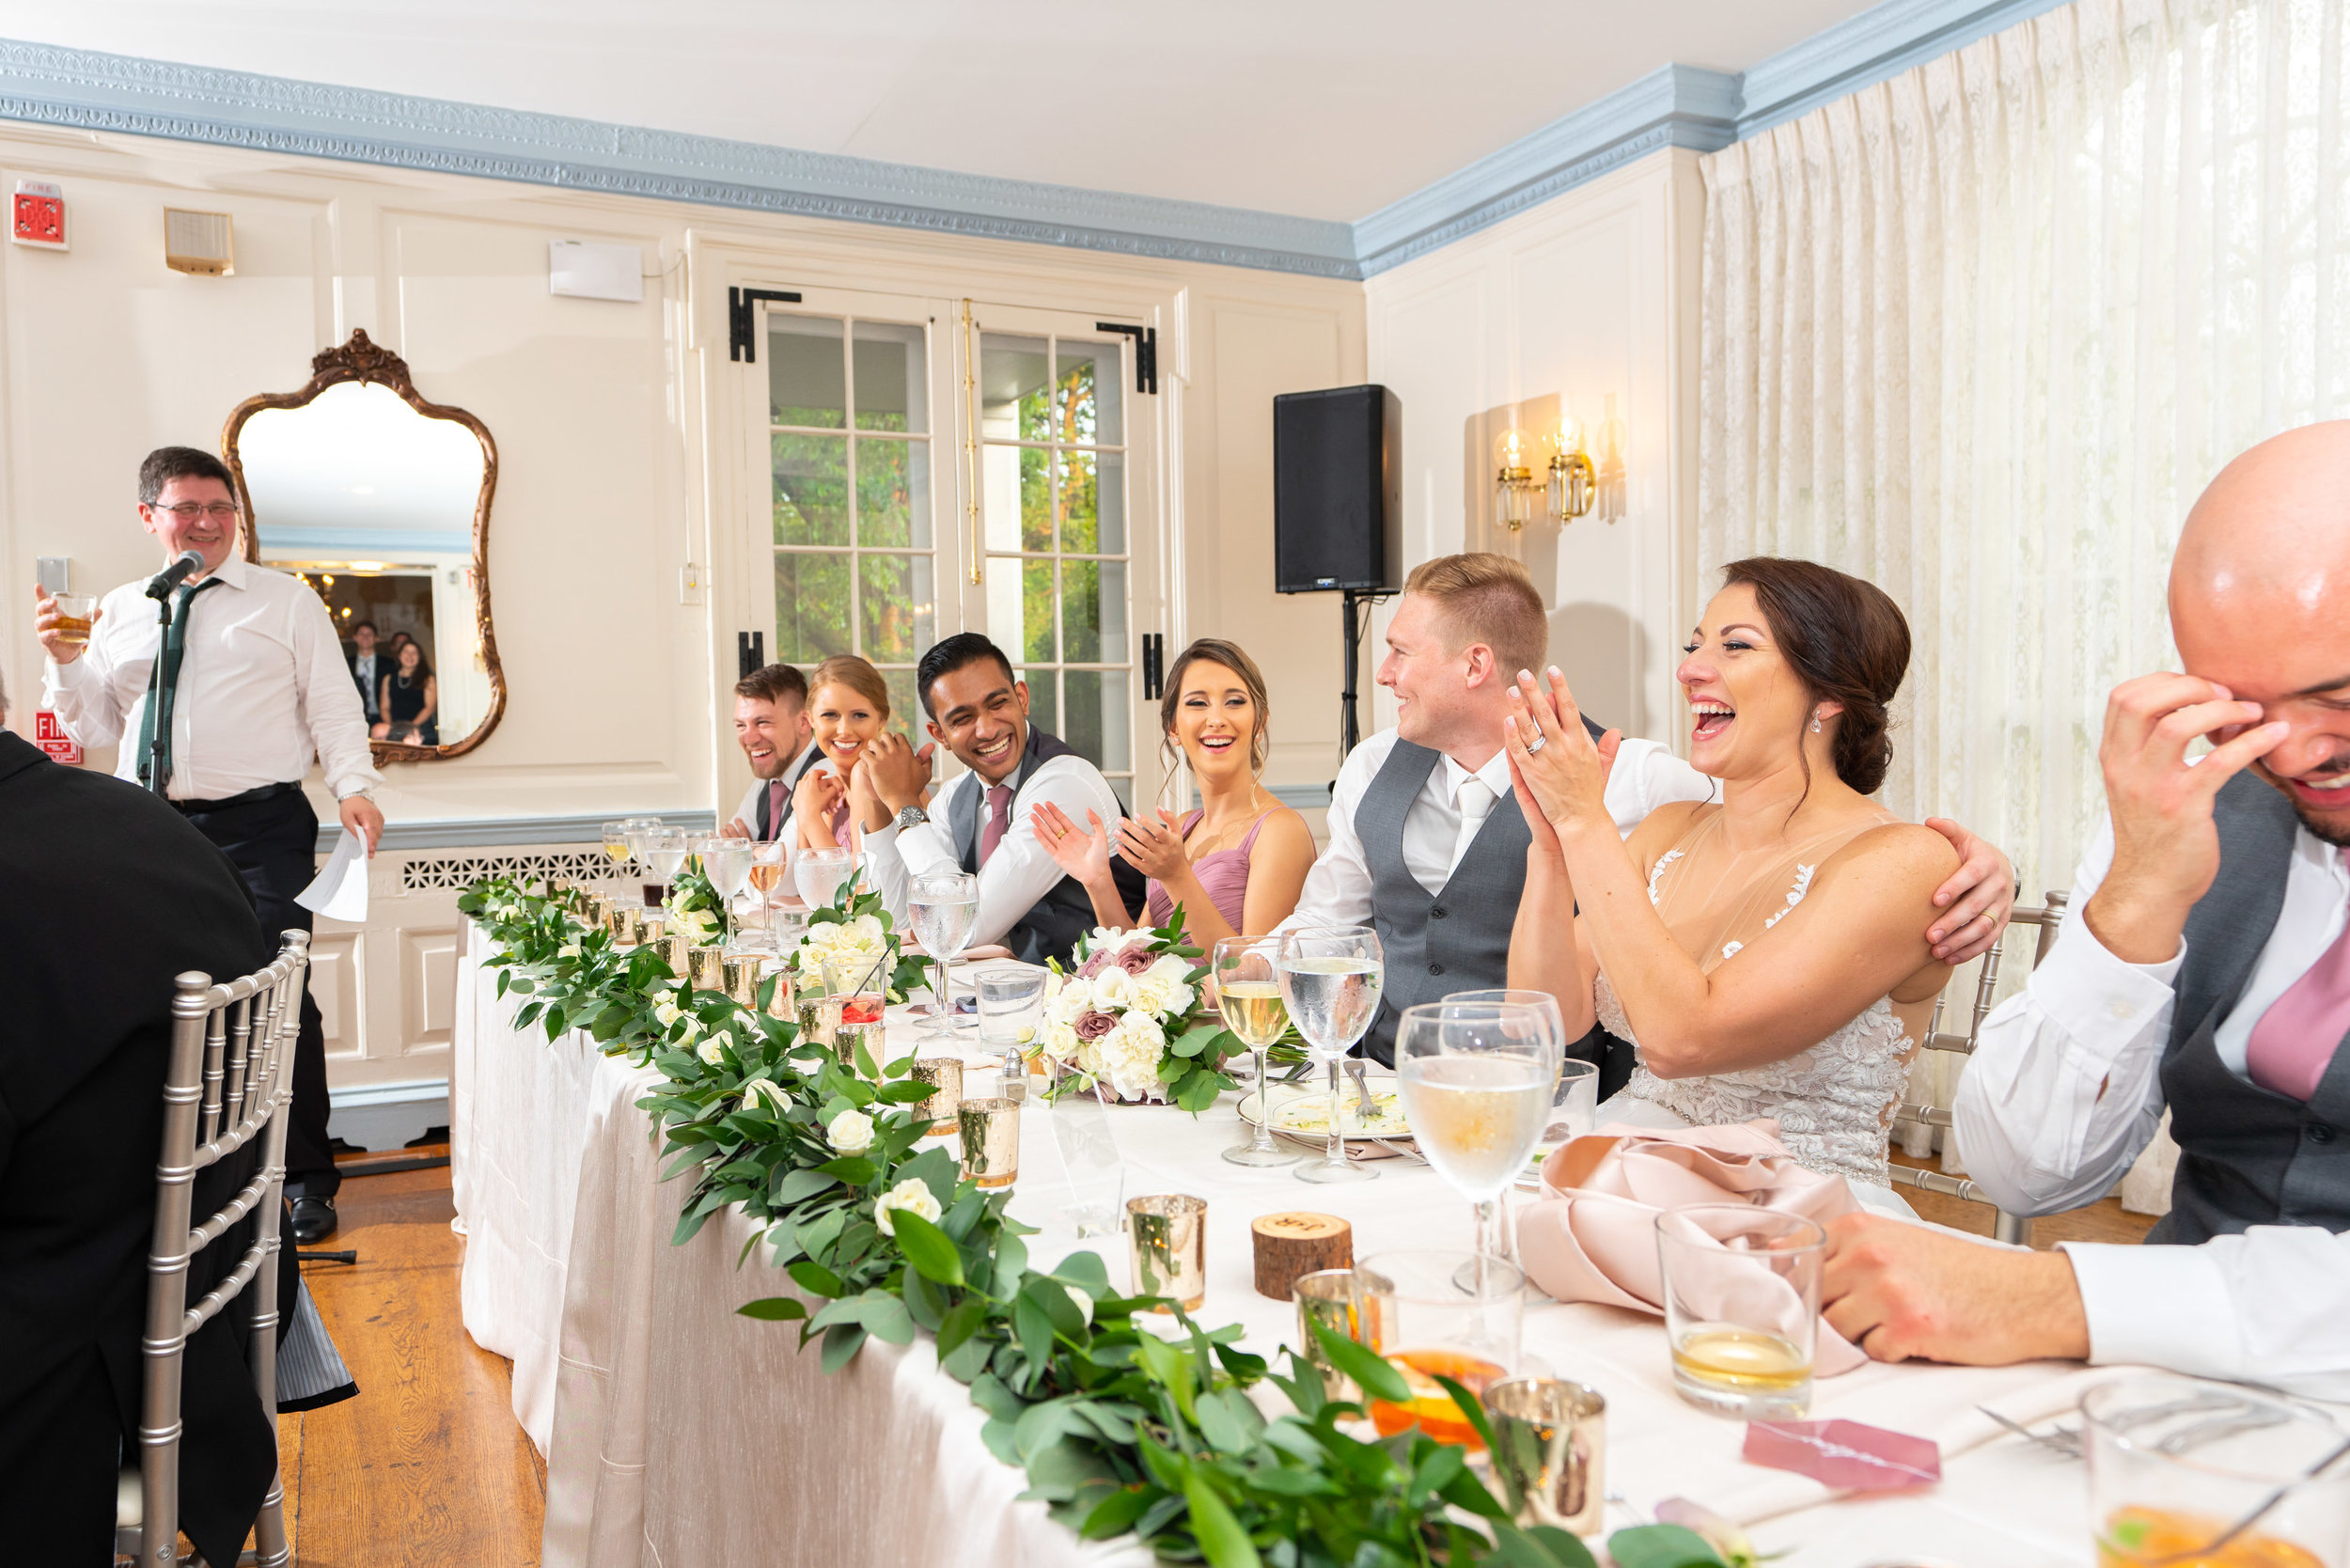 Funny wedding toasts during dinner at Glenview Mansion wedding in Rockville